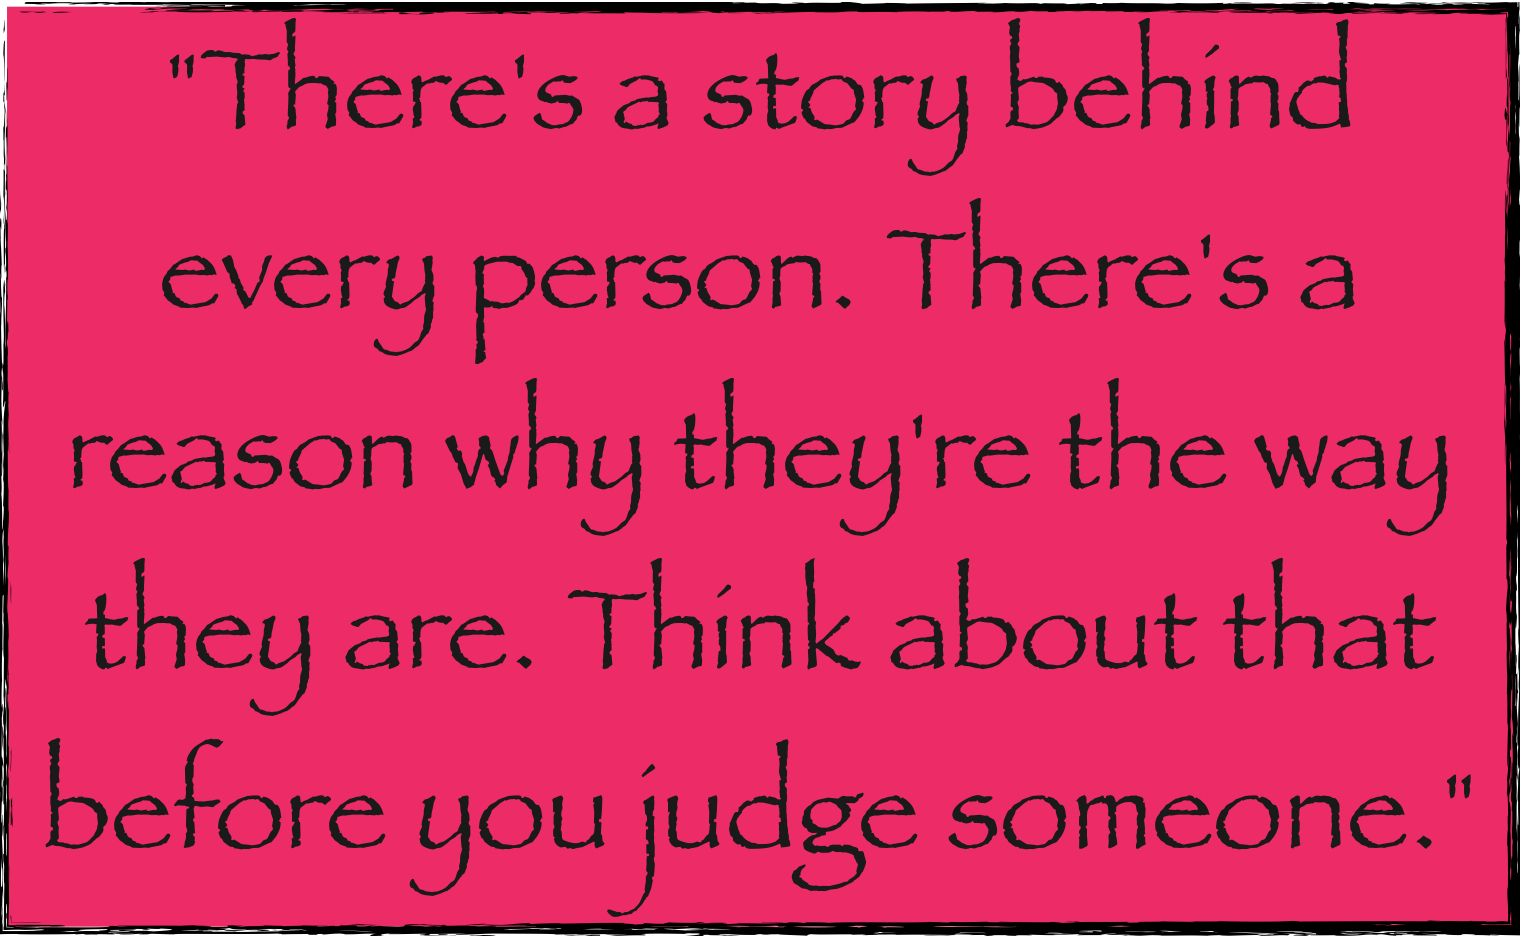 People thinking before they open their mouths and judge..yea, that'll be the day :/